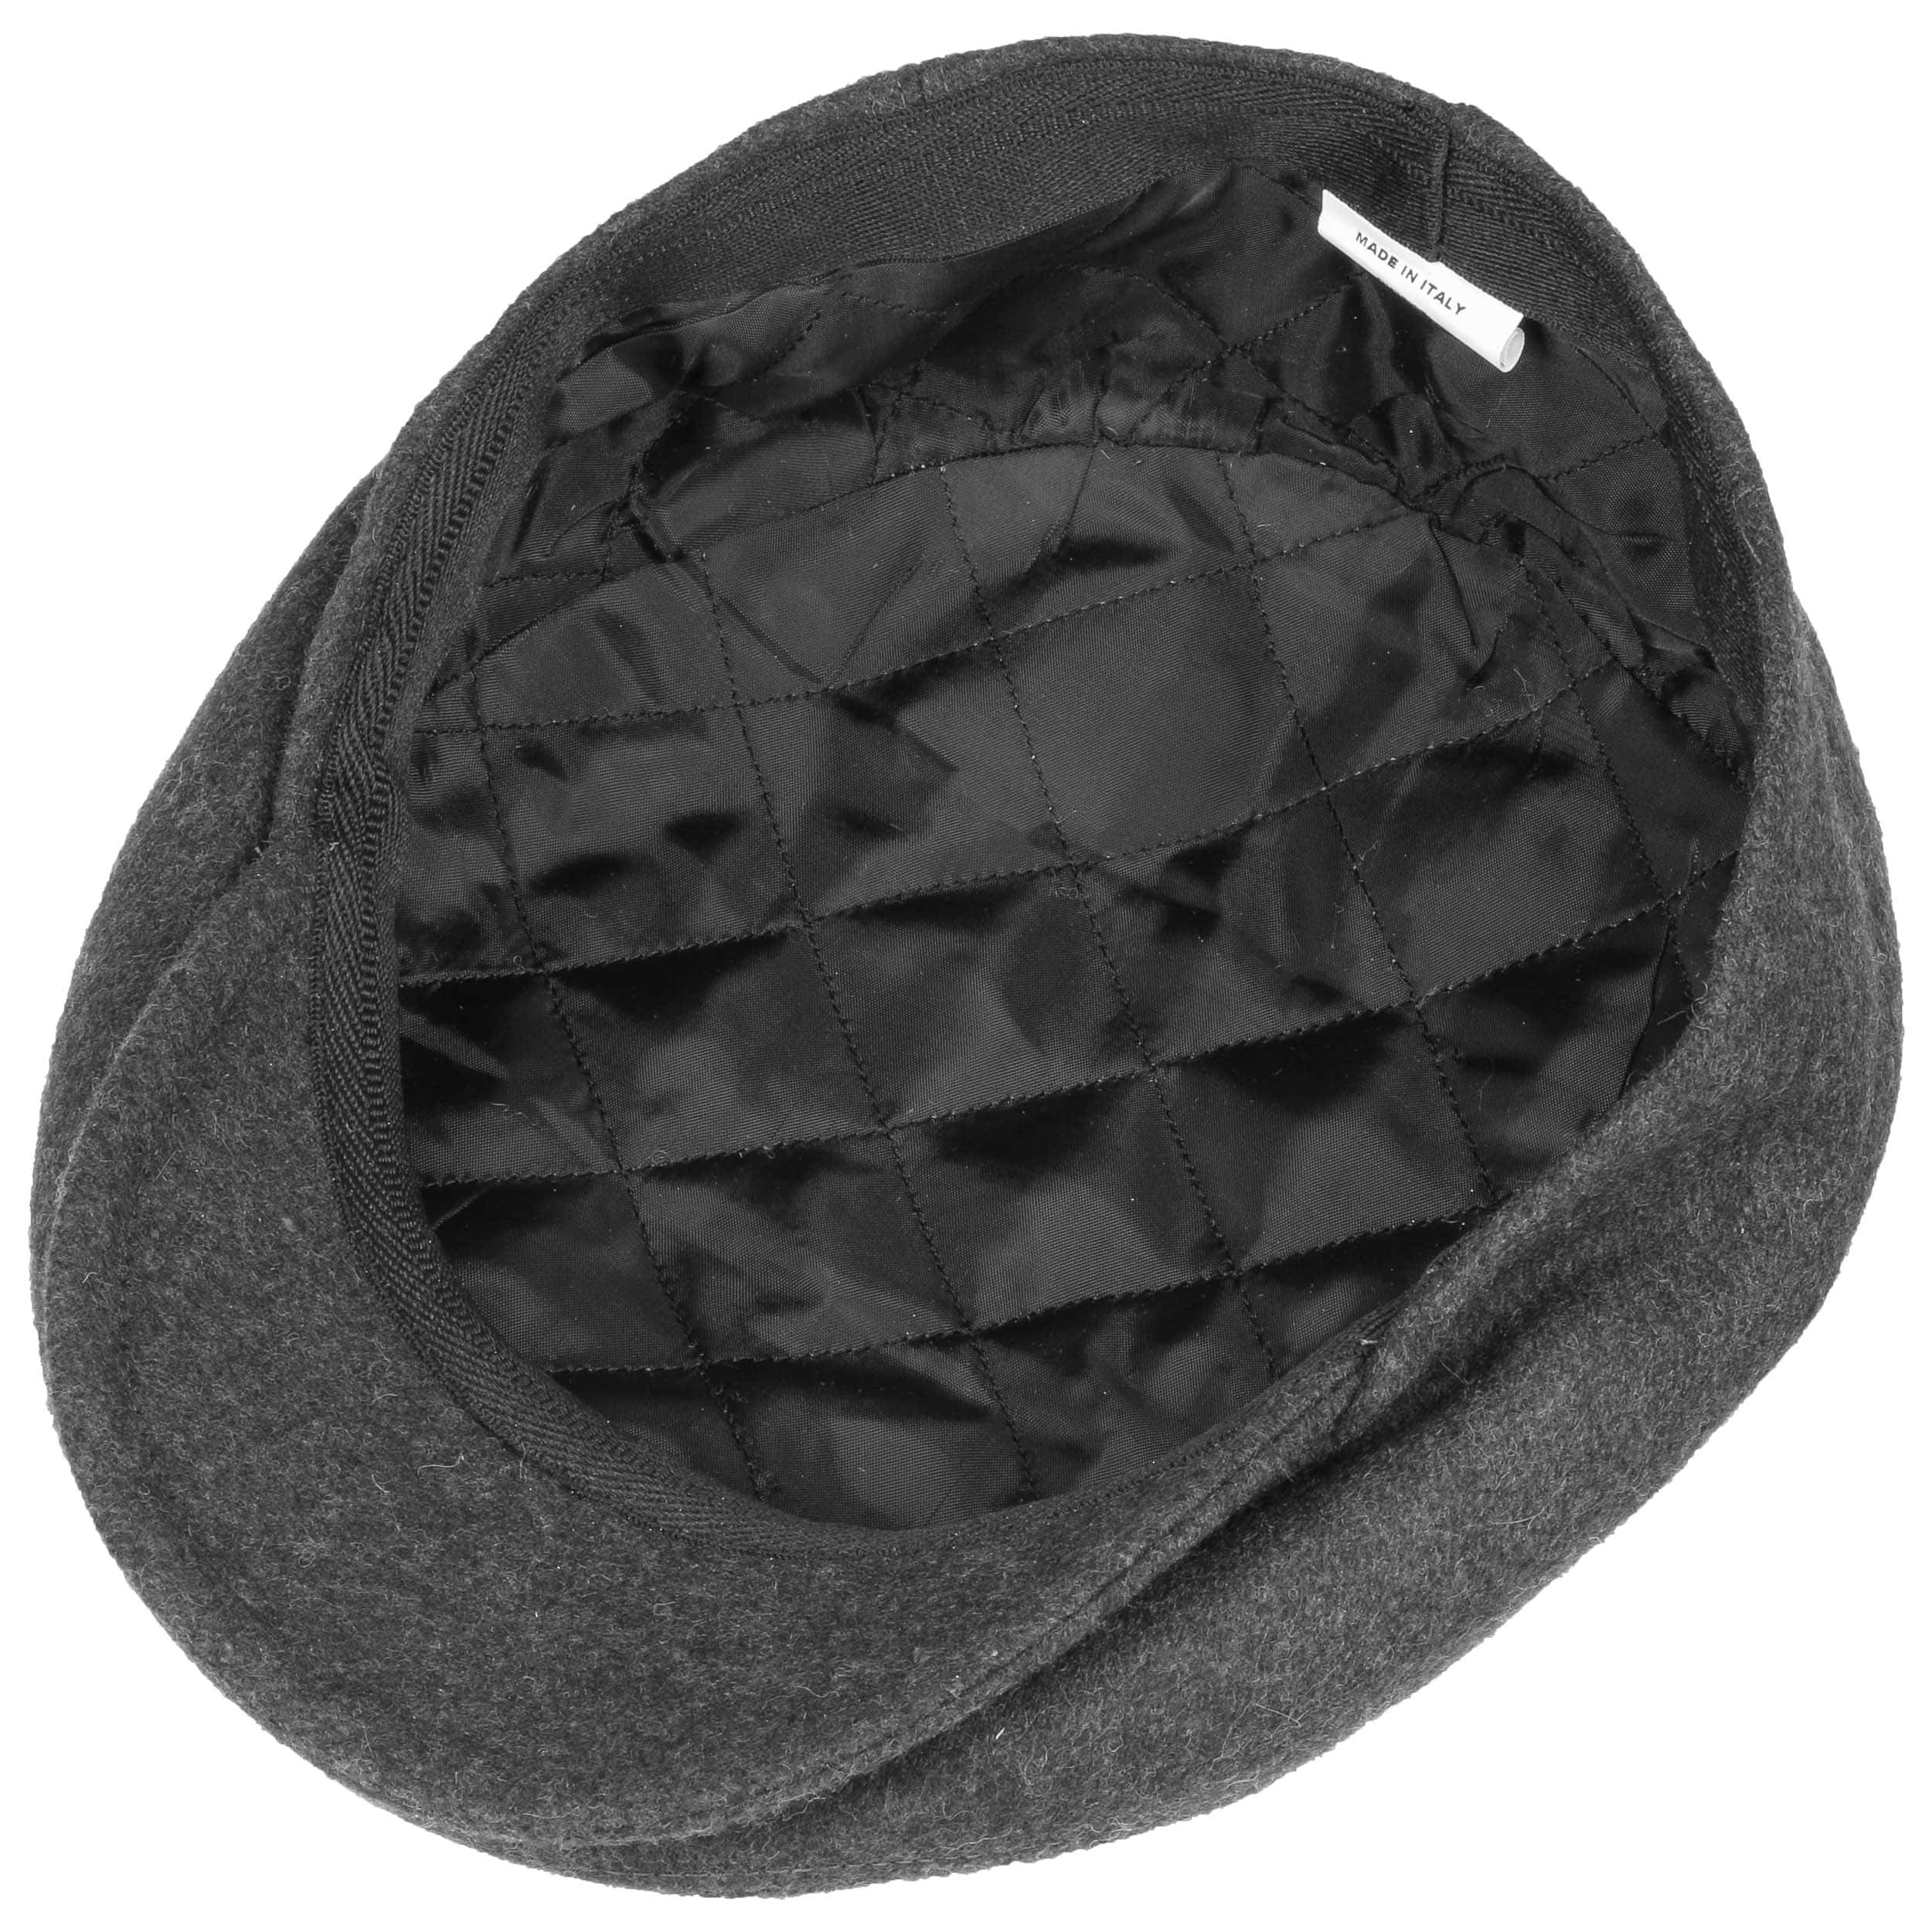 Autumn Winter Lipodo Sport Flat Cap Olive-Green for Men and Women Flat Cap with Peak in Size 62 cm Brown Sporty Peaked Cap